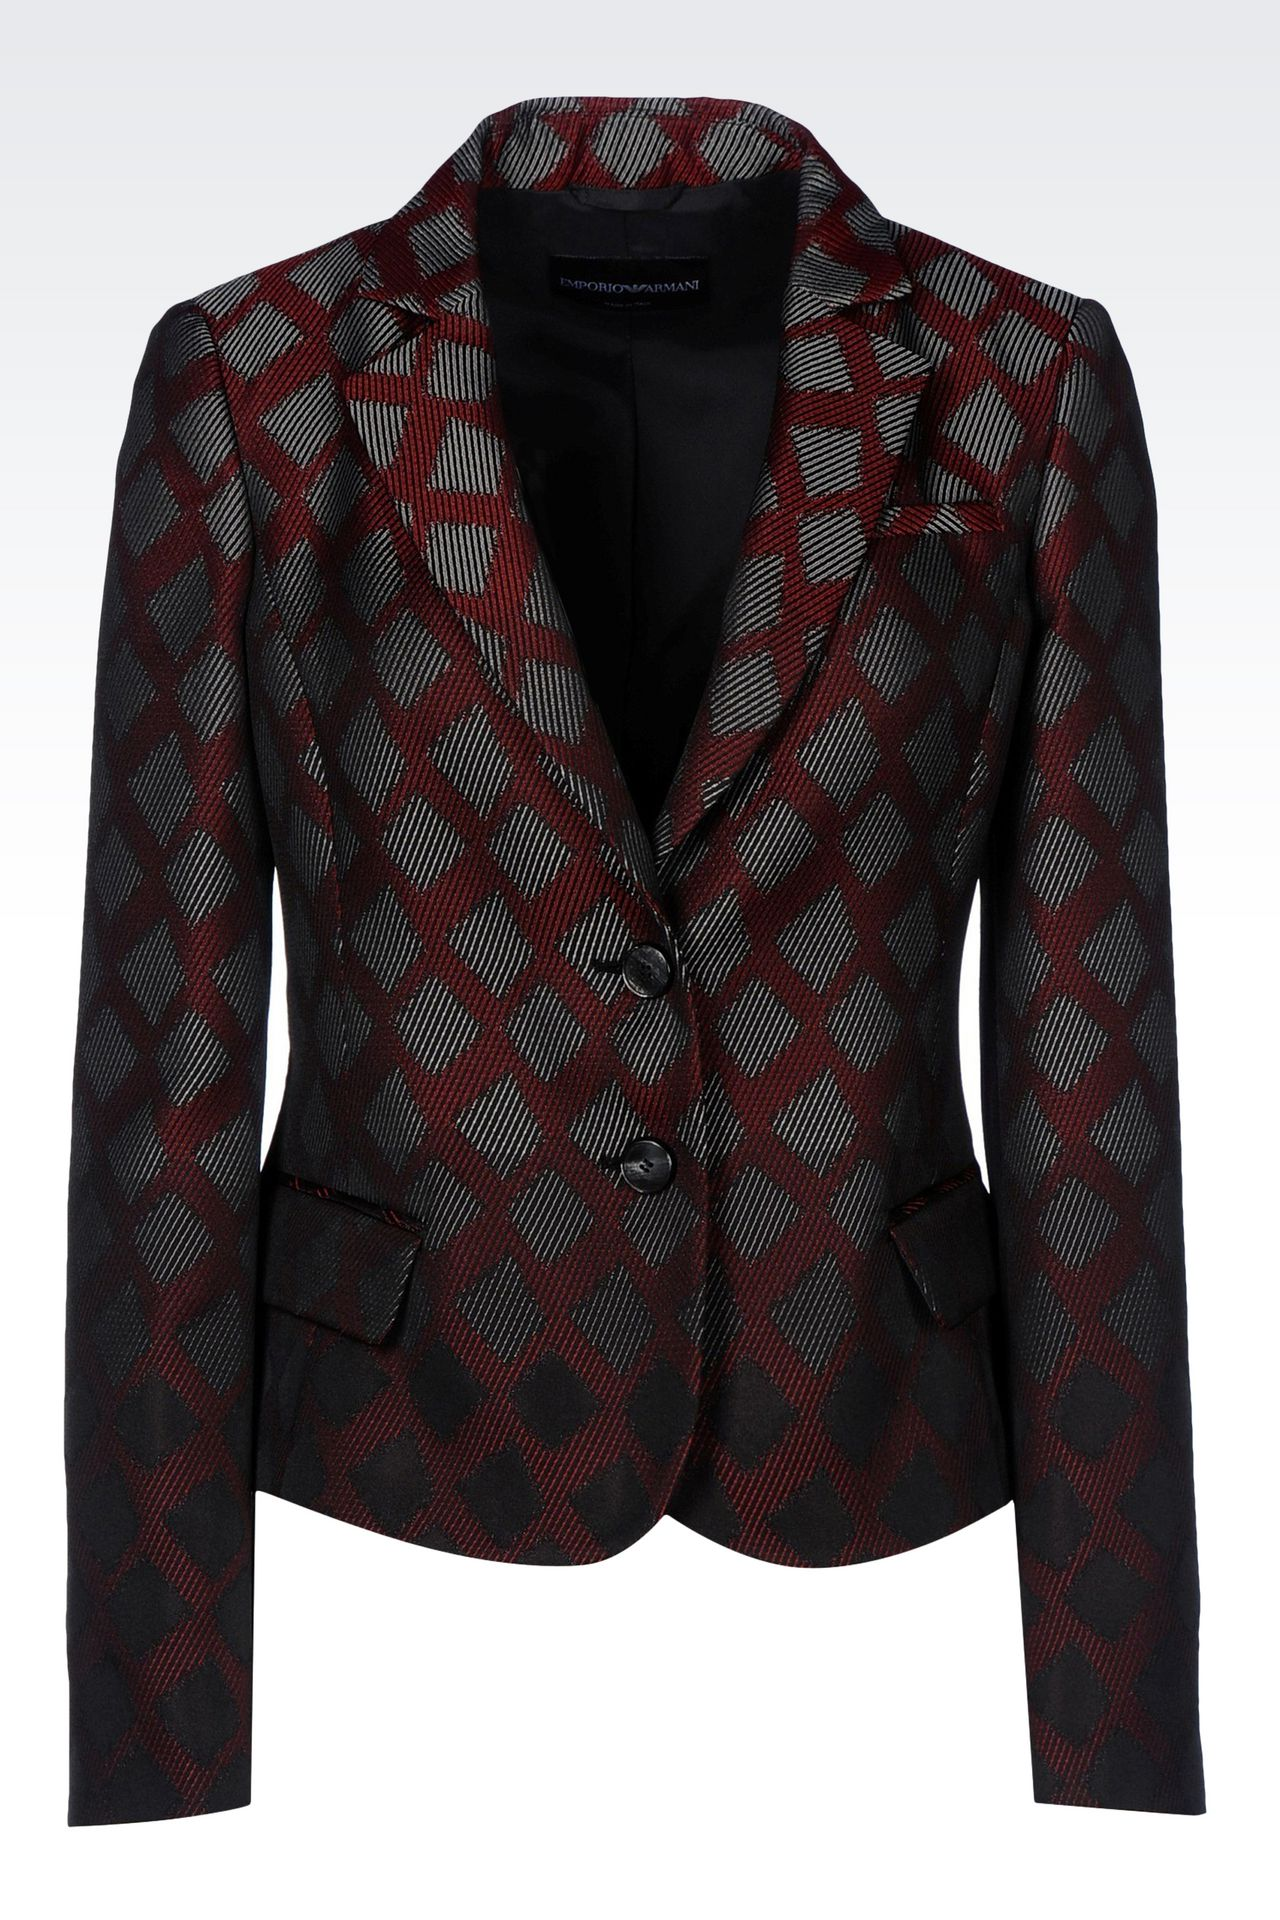 Emporio Armani Women Two Buttons Jacket - SINGLE BREASTED JACKET IN GEOMETRIC DESIGN JACQUARD Emporio Armani Official Online Store